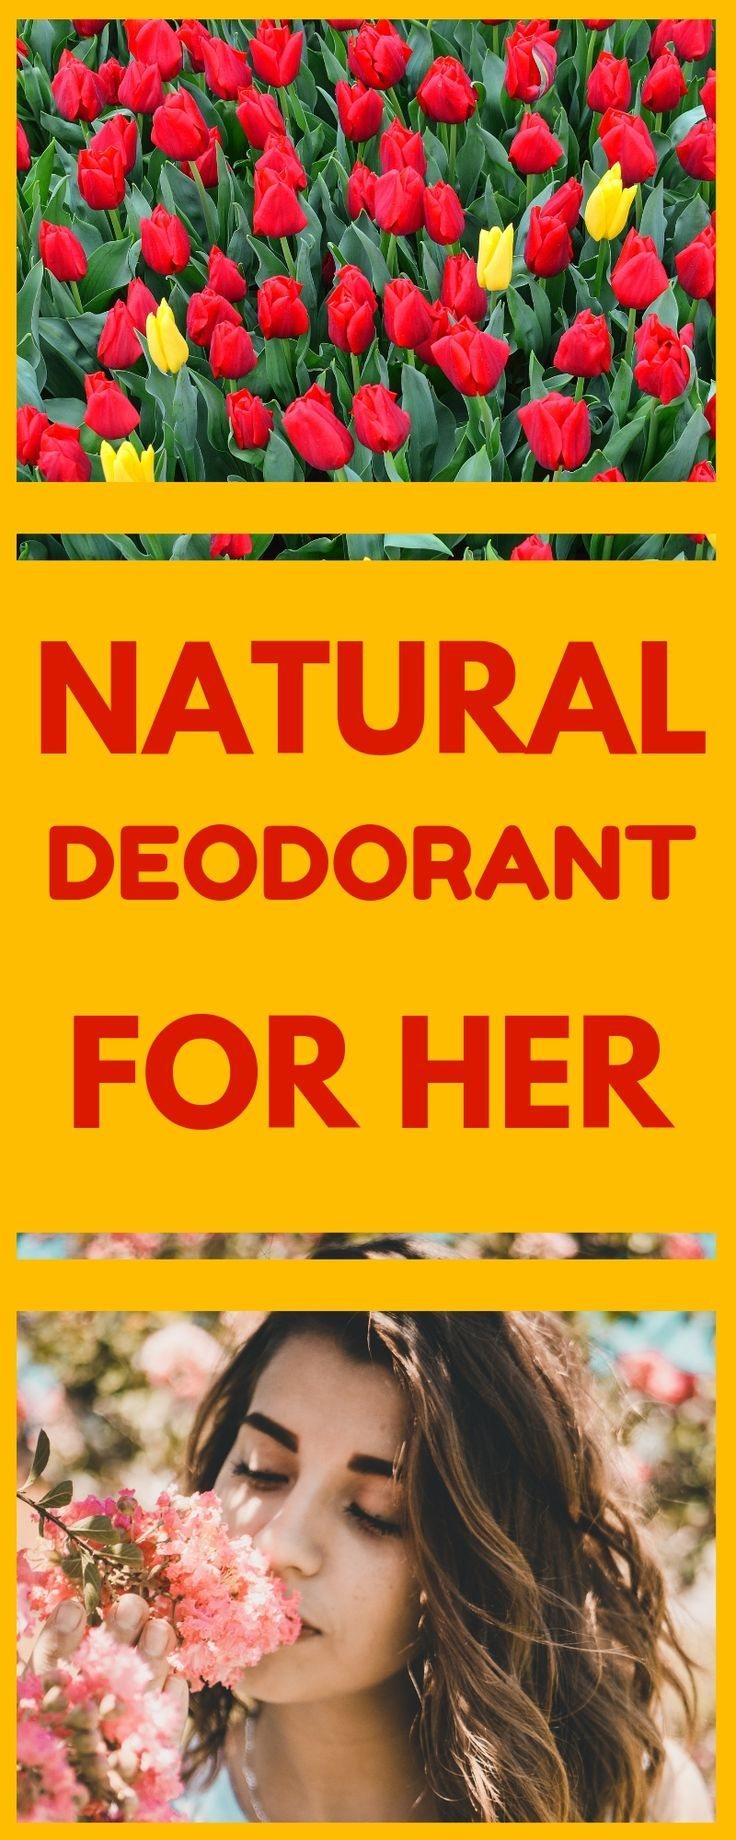 Deodorant - How to Keep Your Pits Smelling Good, Naturally